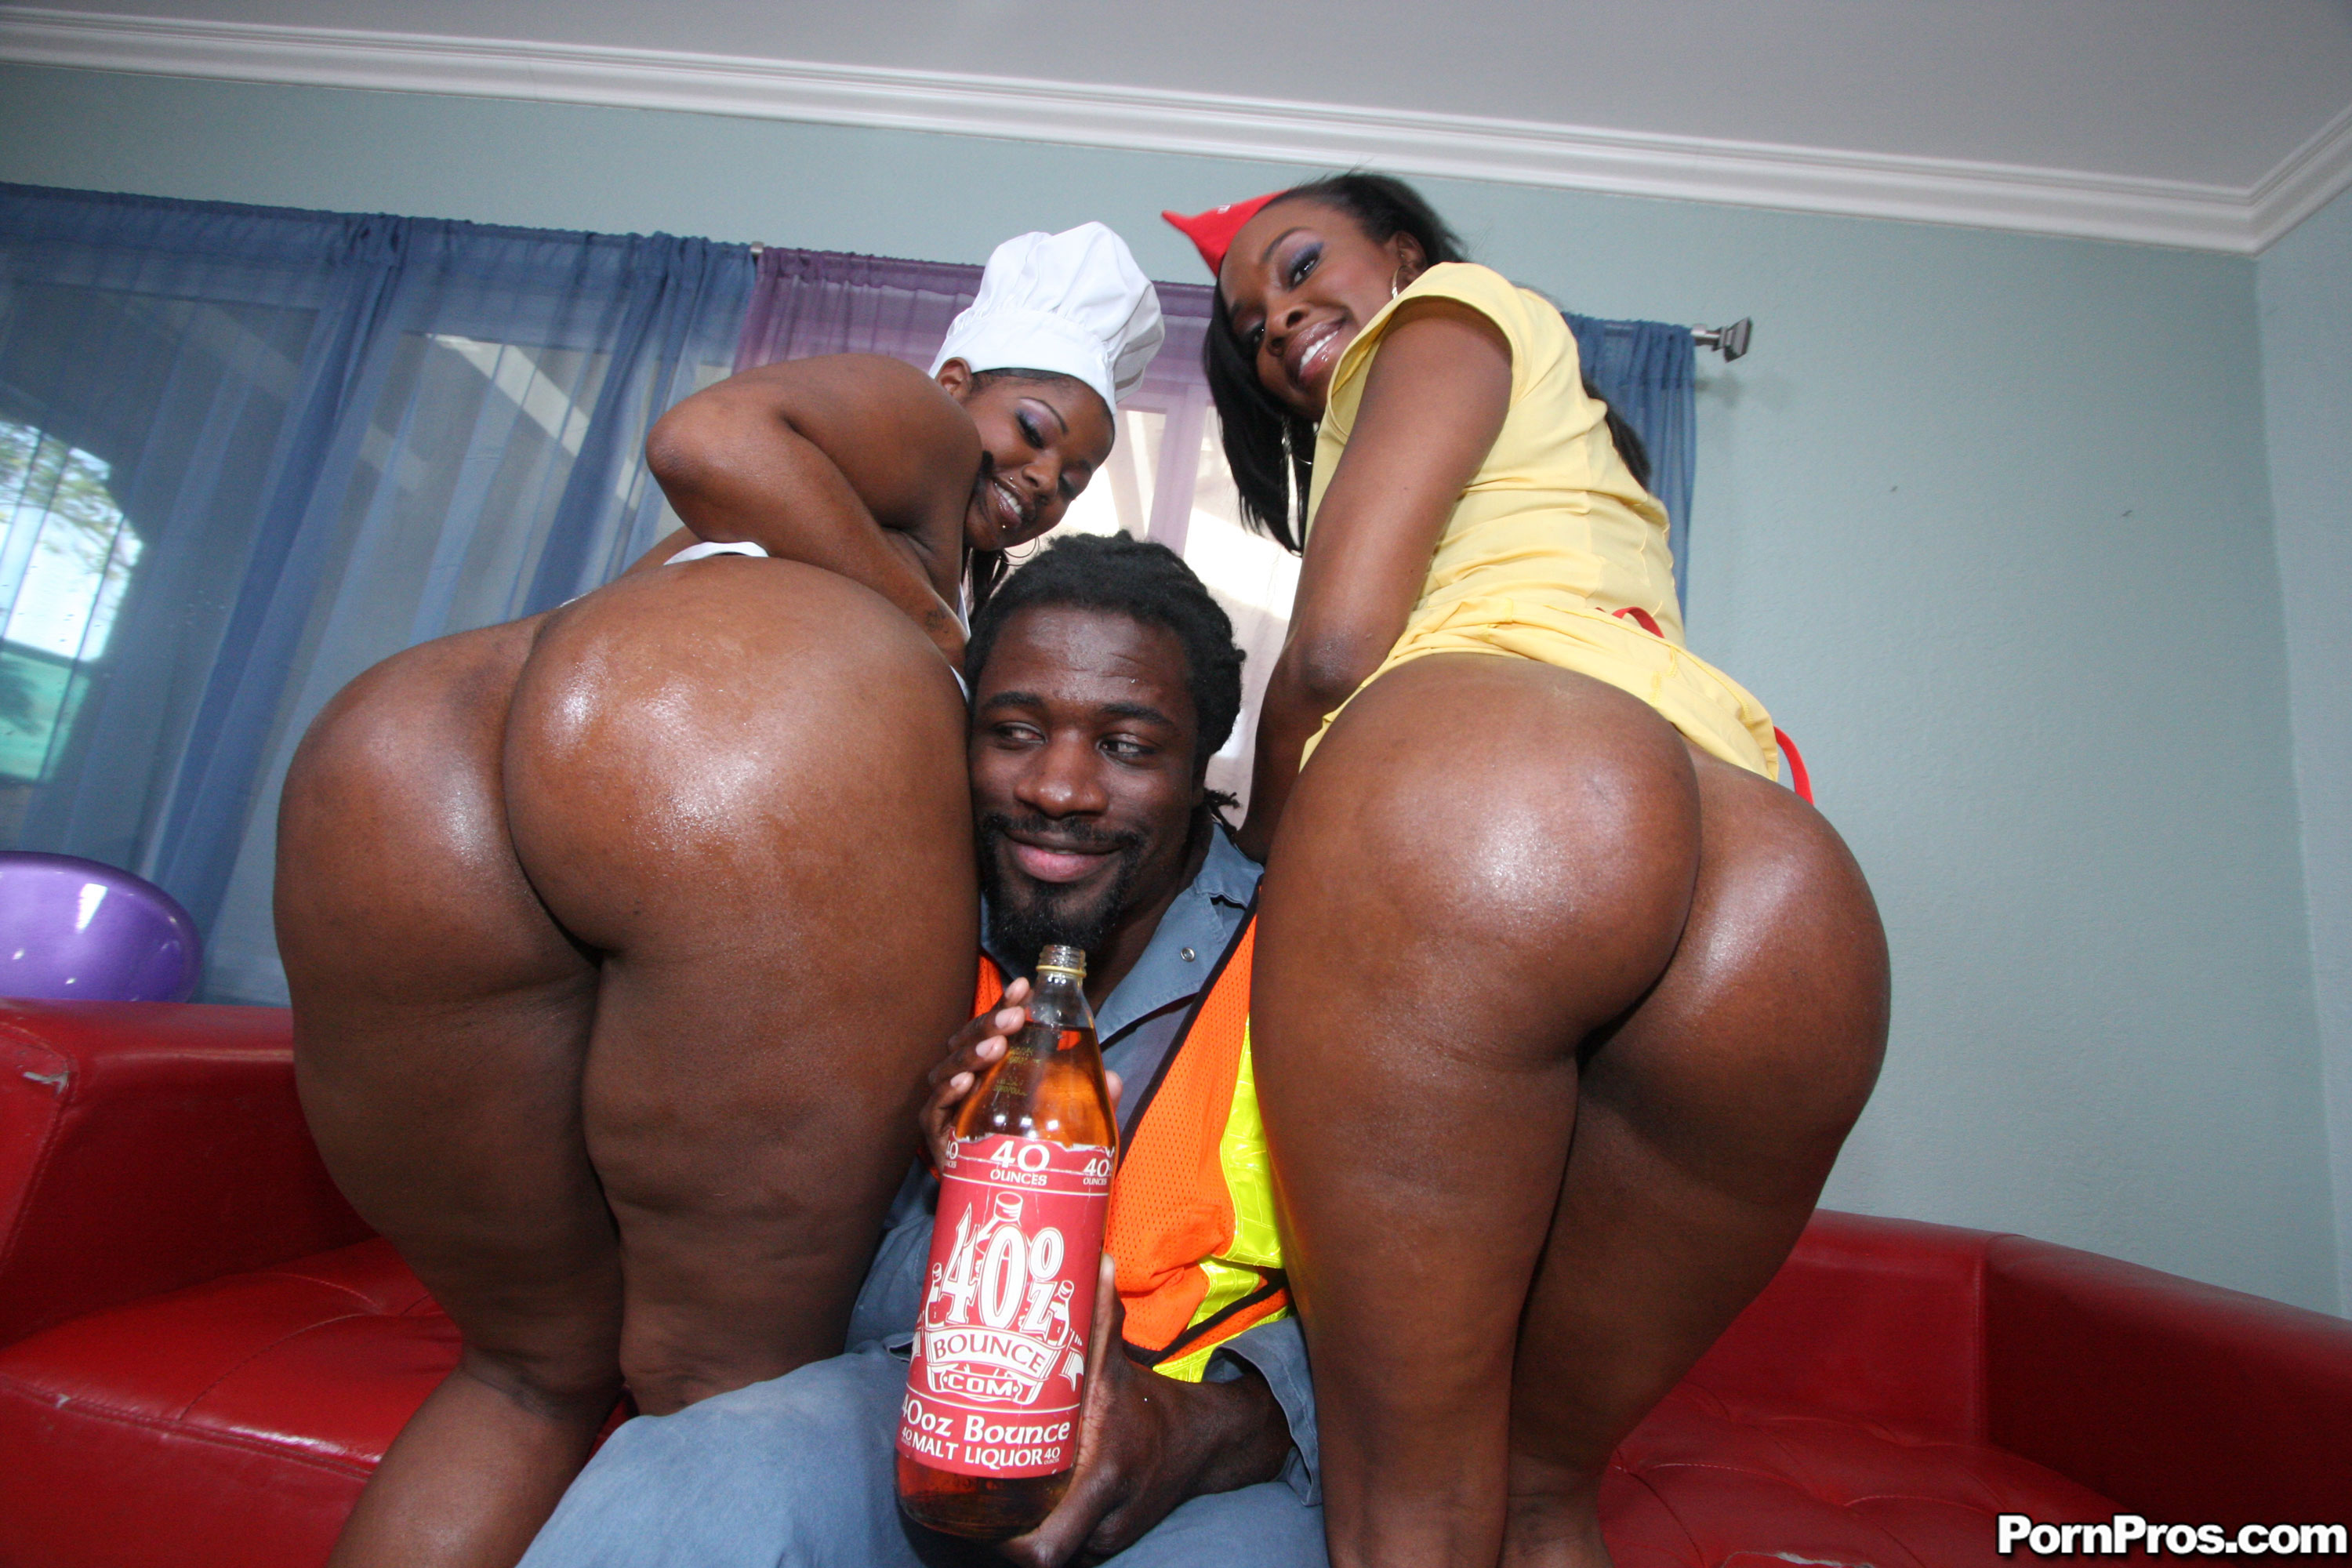 Ghetto Hoes Xxx in two phat black whores getting a massive schlong up their bubble butts!